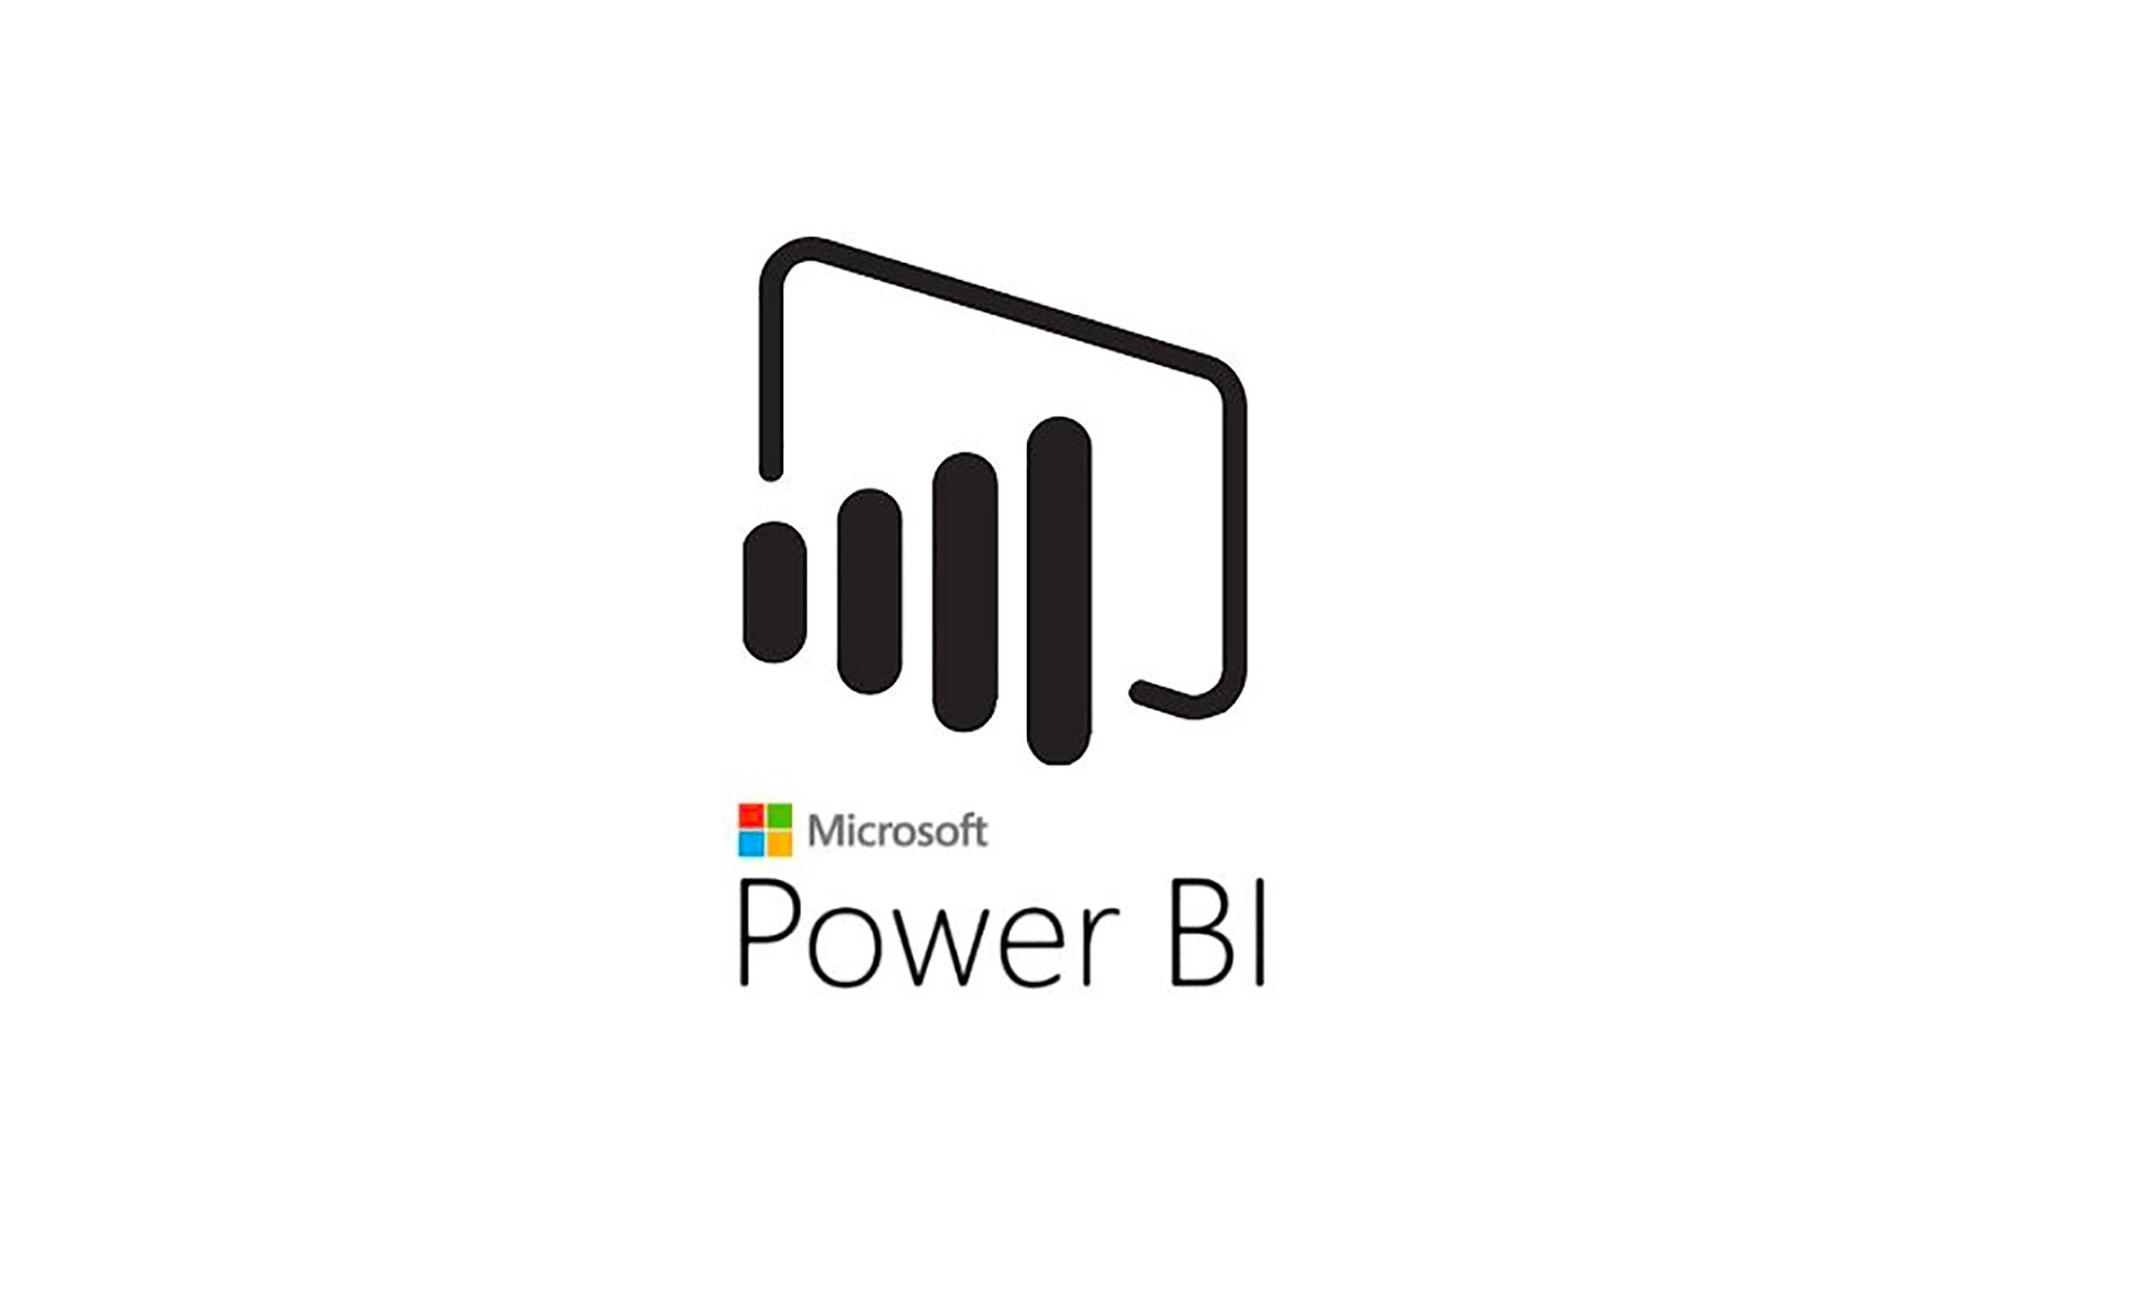 Microsoft Power BI Training in Mansfield | Introduction to Power BI training for beginners | Getting started with Power BI | What is Power BI | January 20, 2020 - February 12, 2020